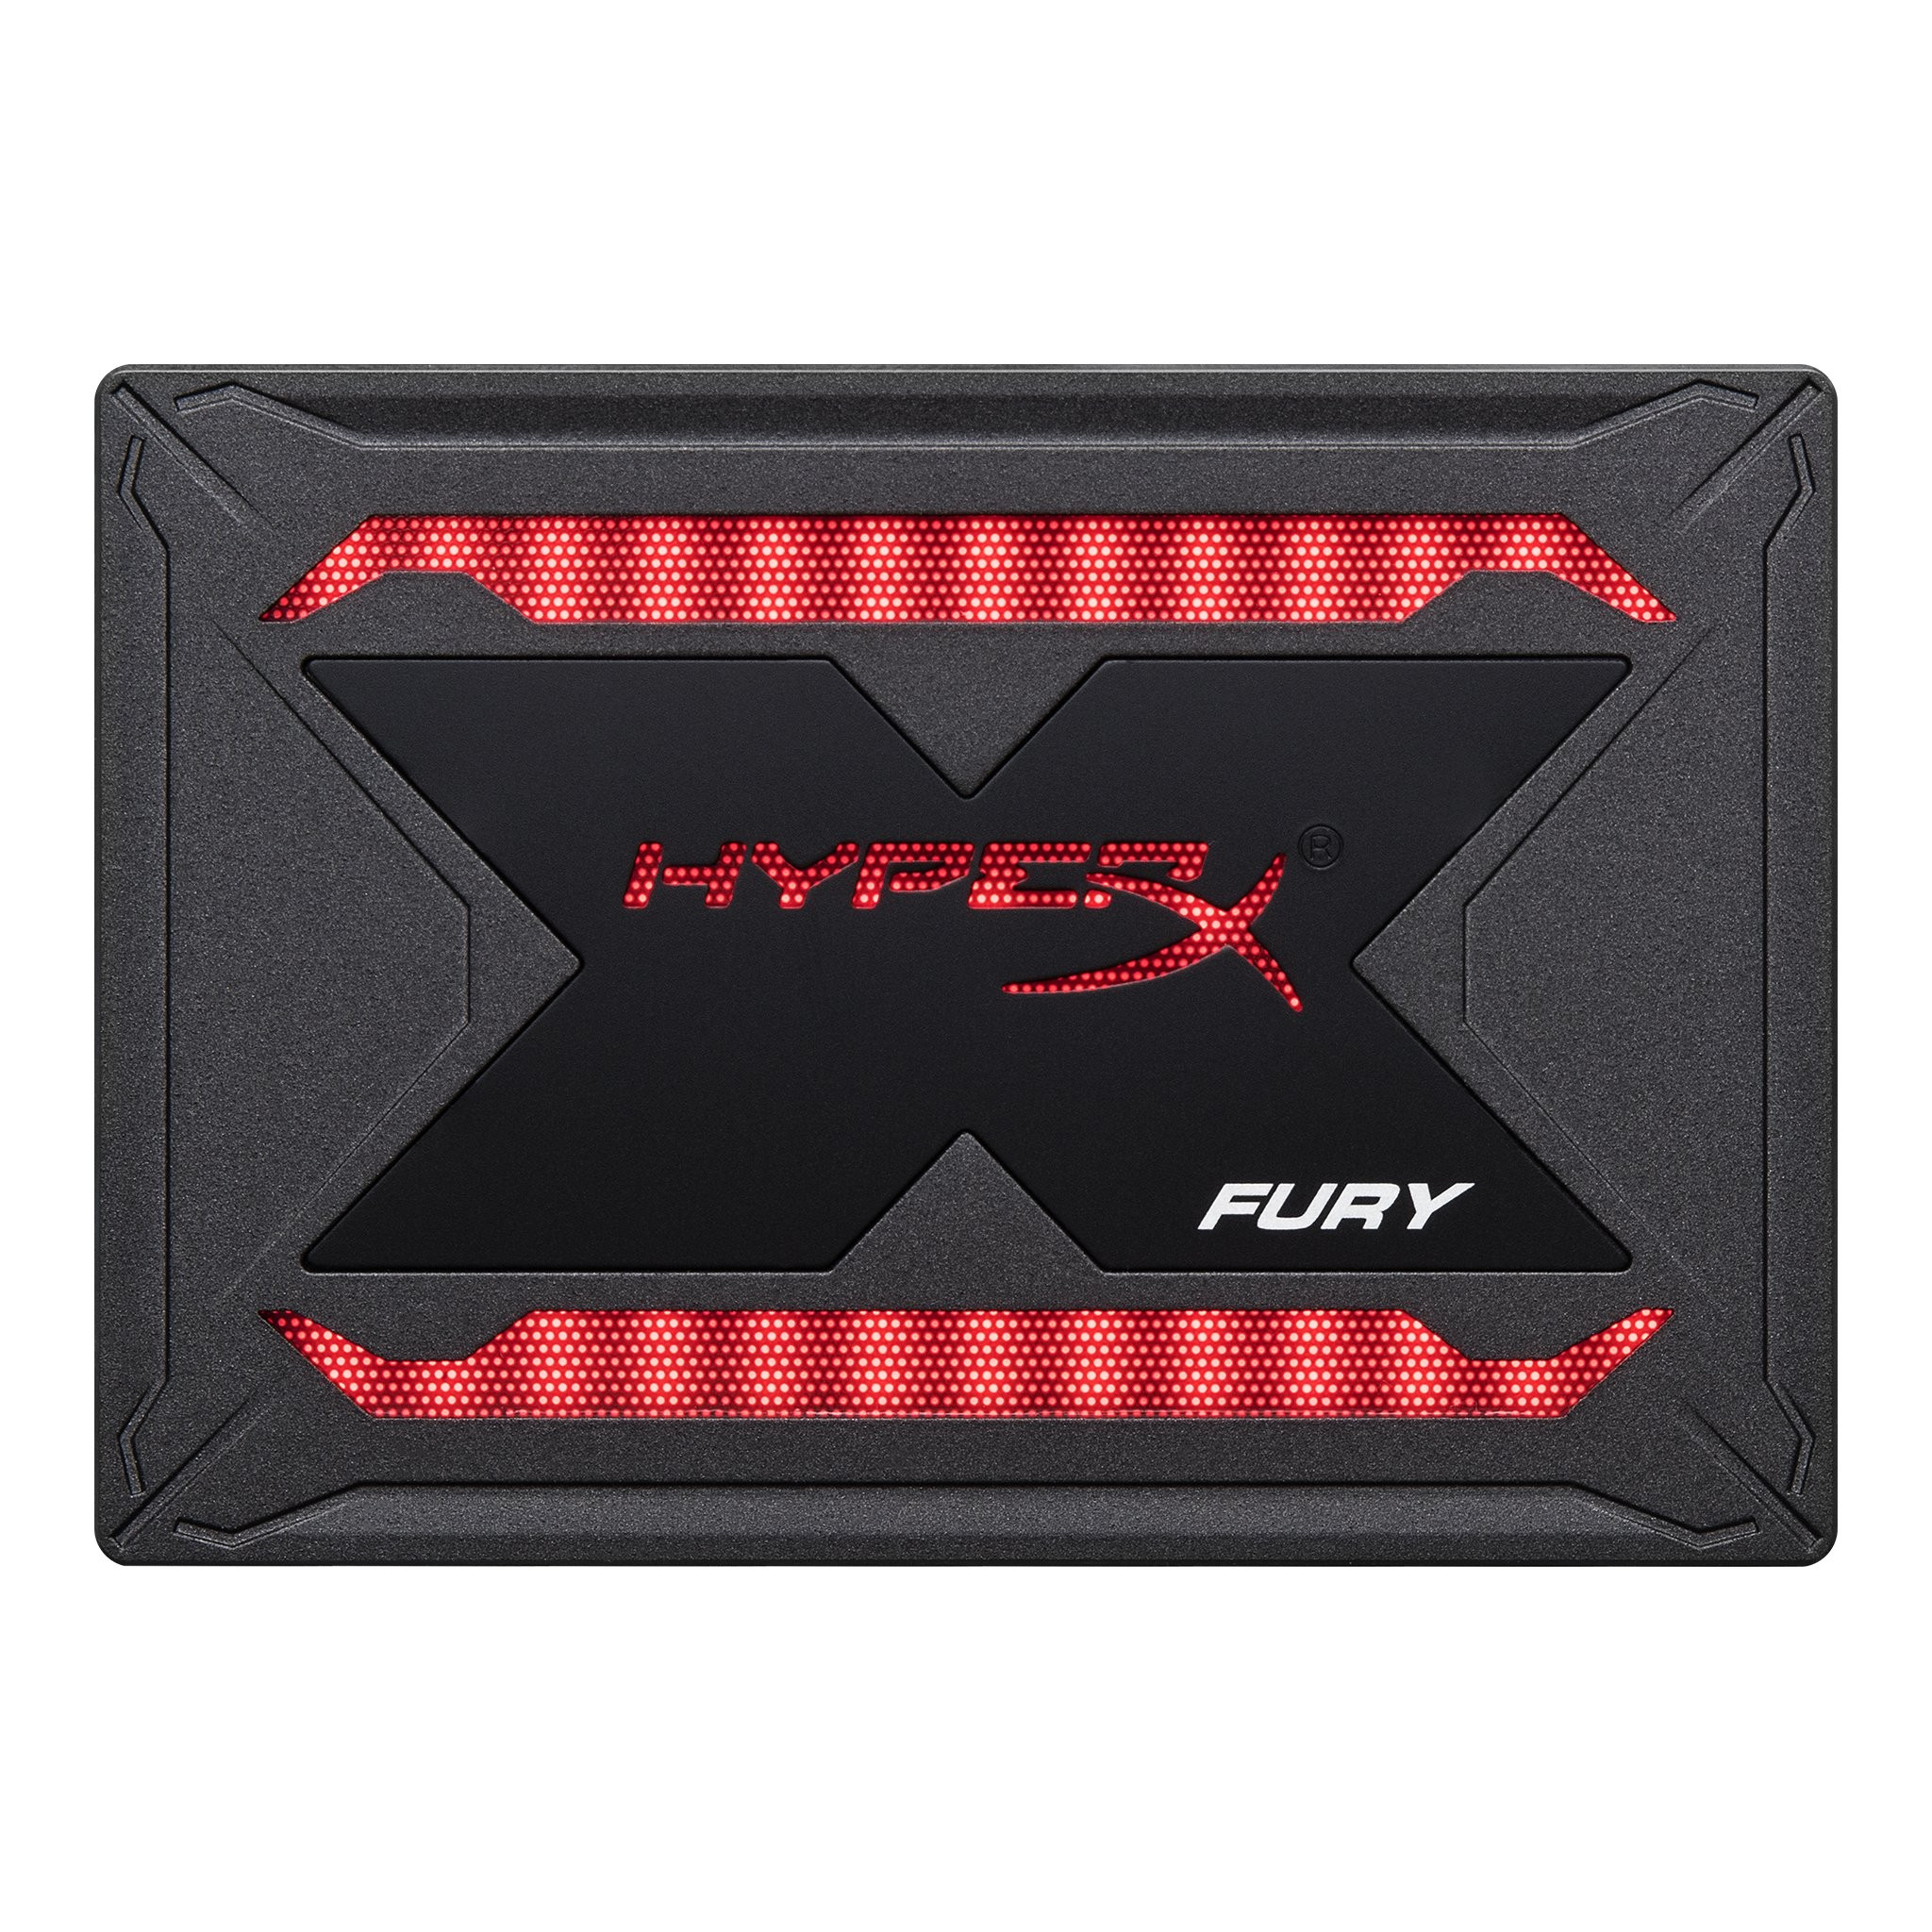 SSD Kingston HyperX Fury RGB 240GB 2.5 inch SATA III